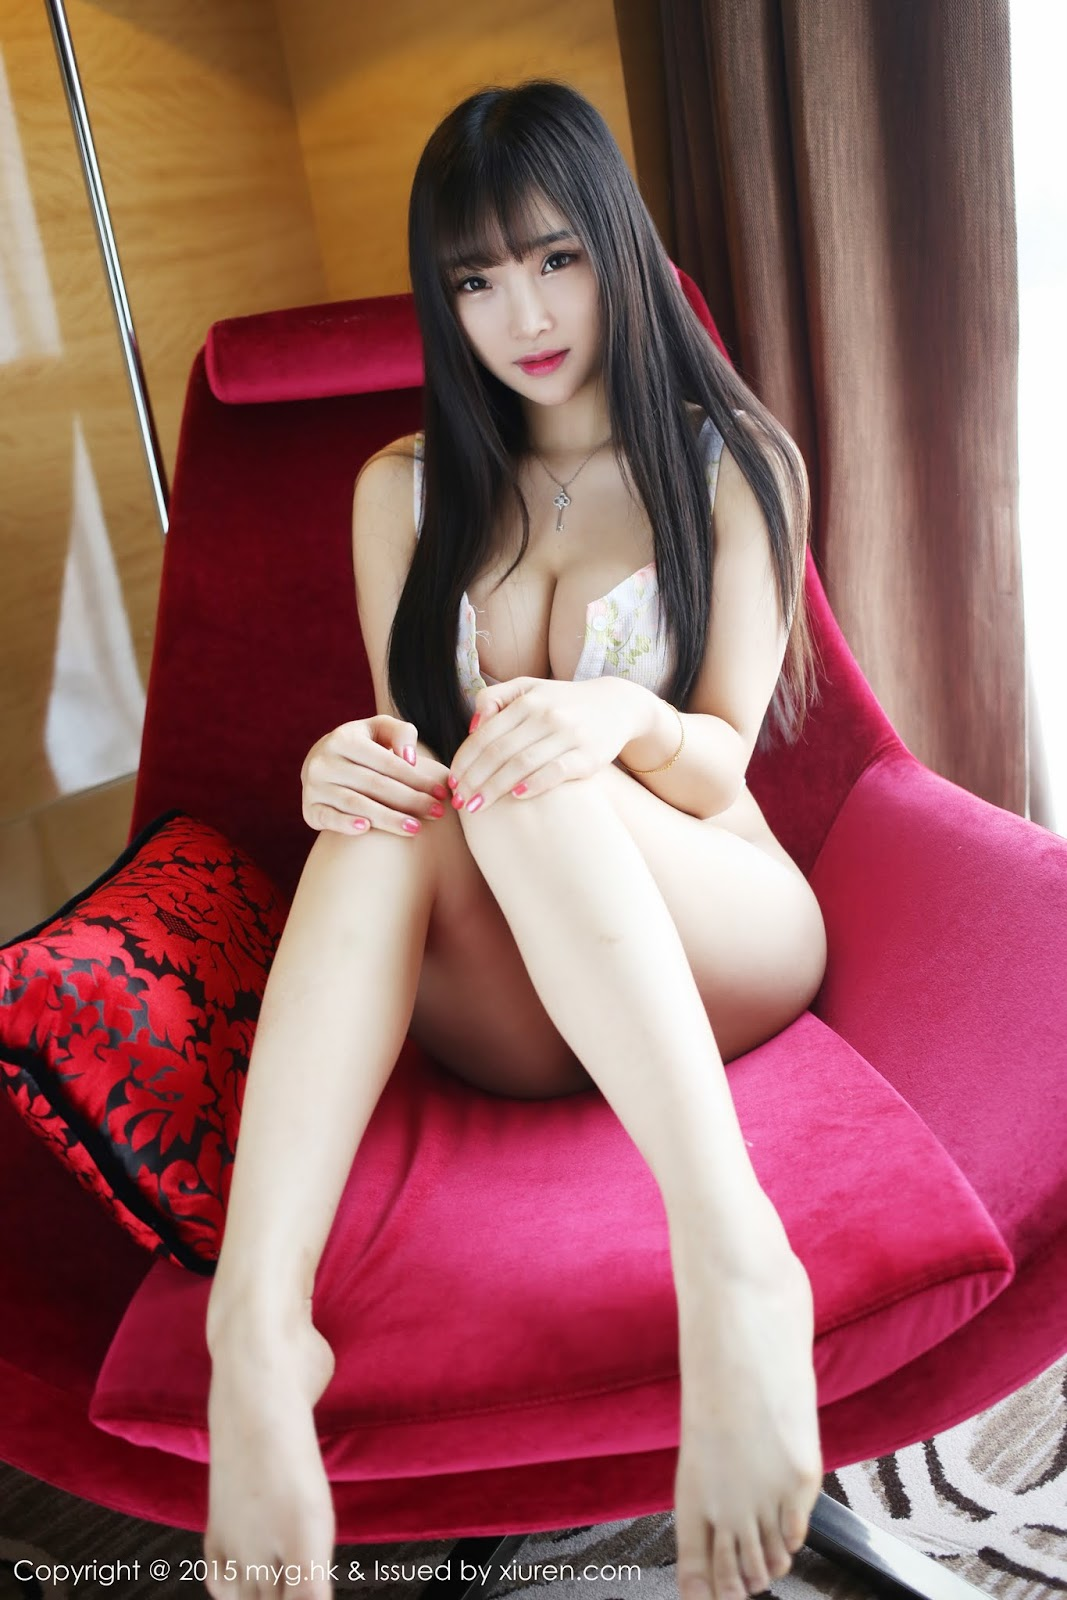 0017 - Sexy Girl Model MYGIRL VOL.118